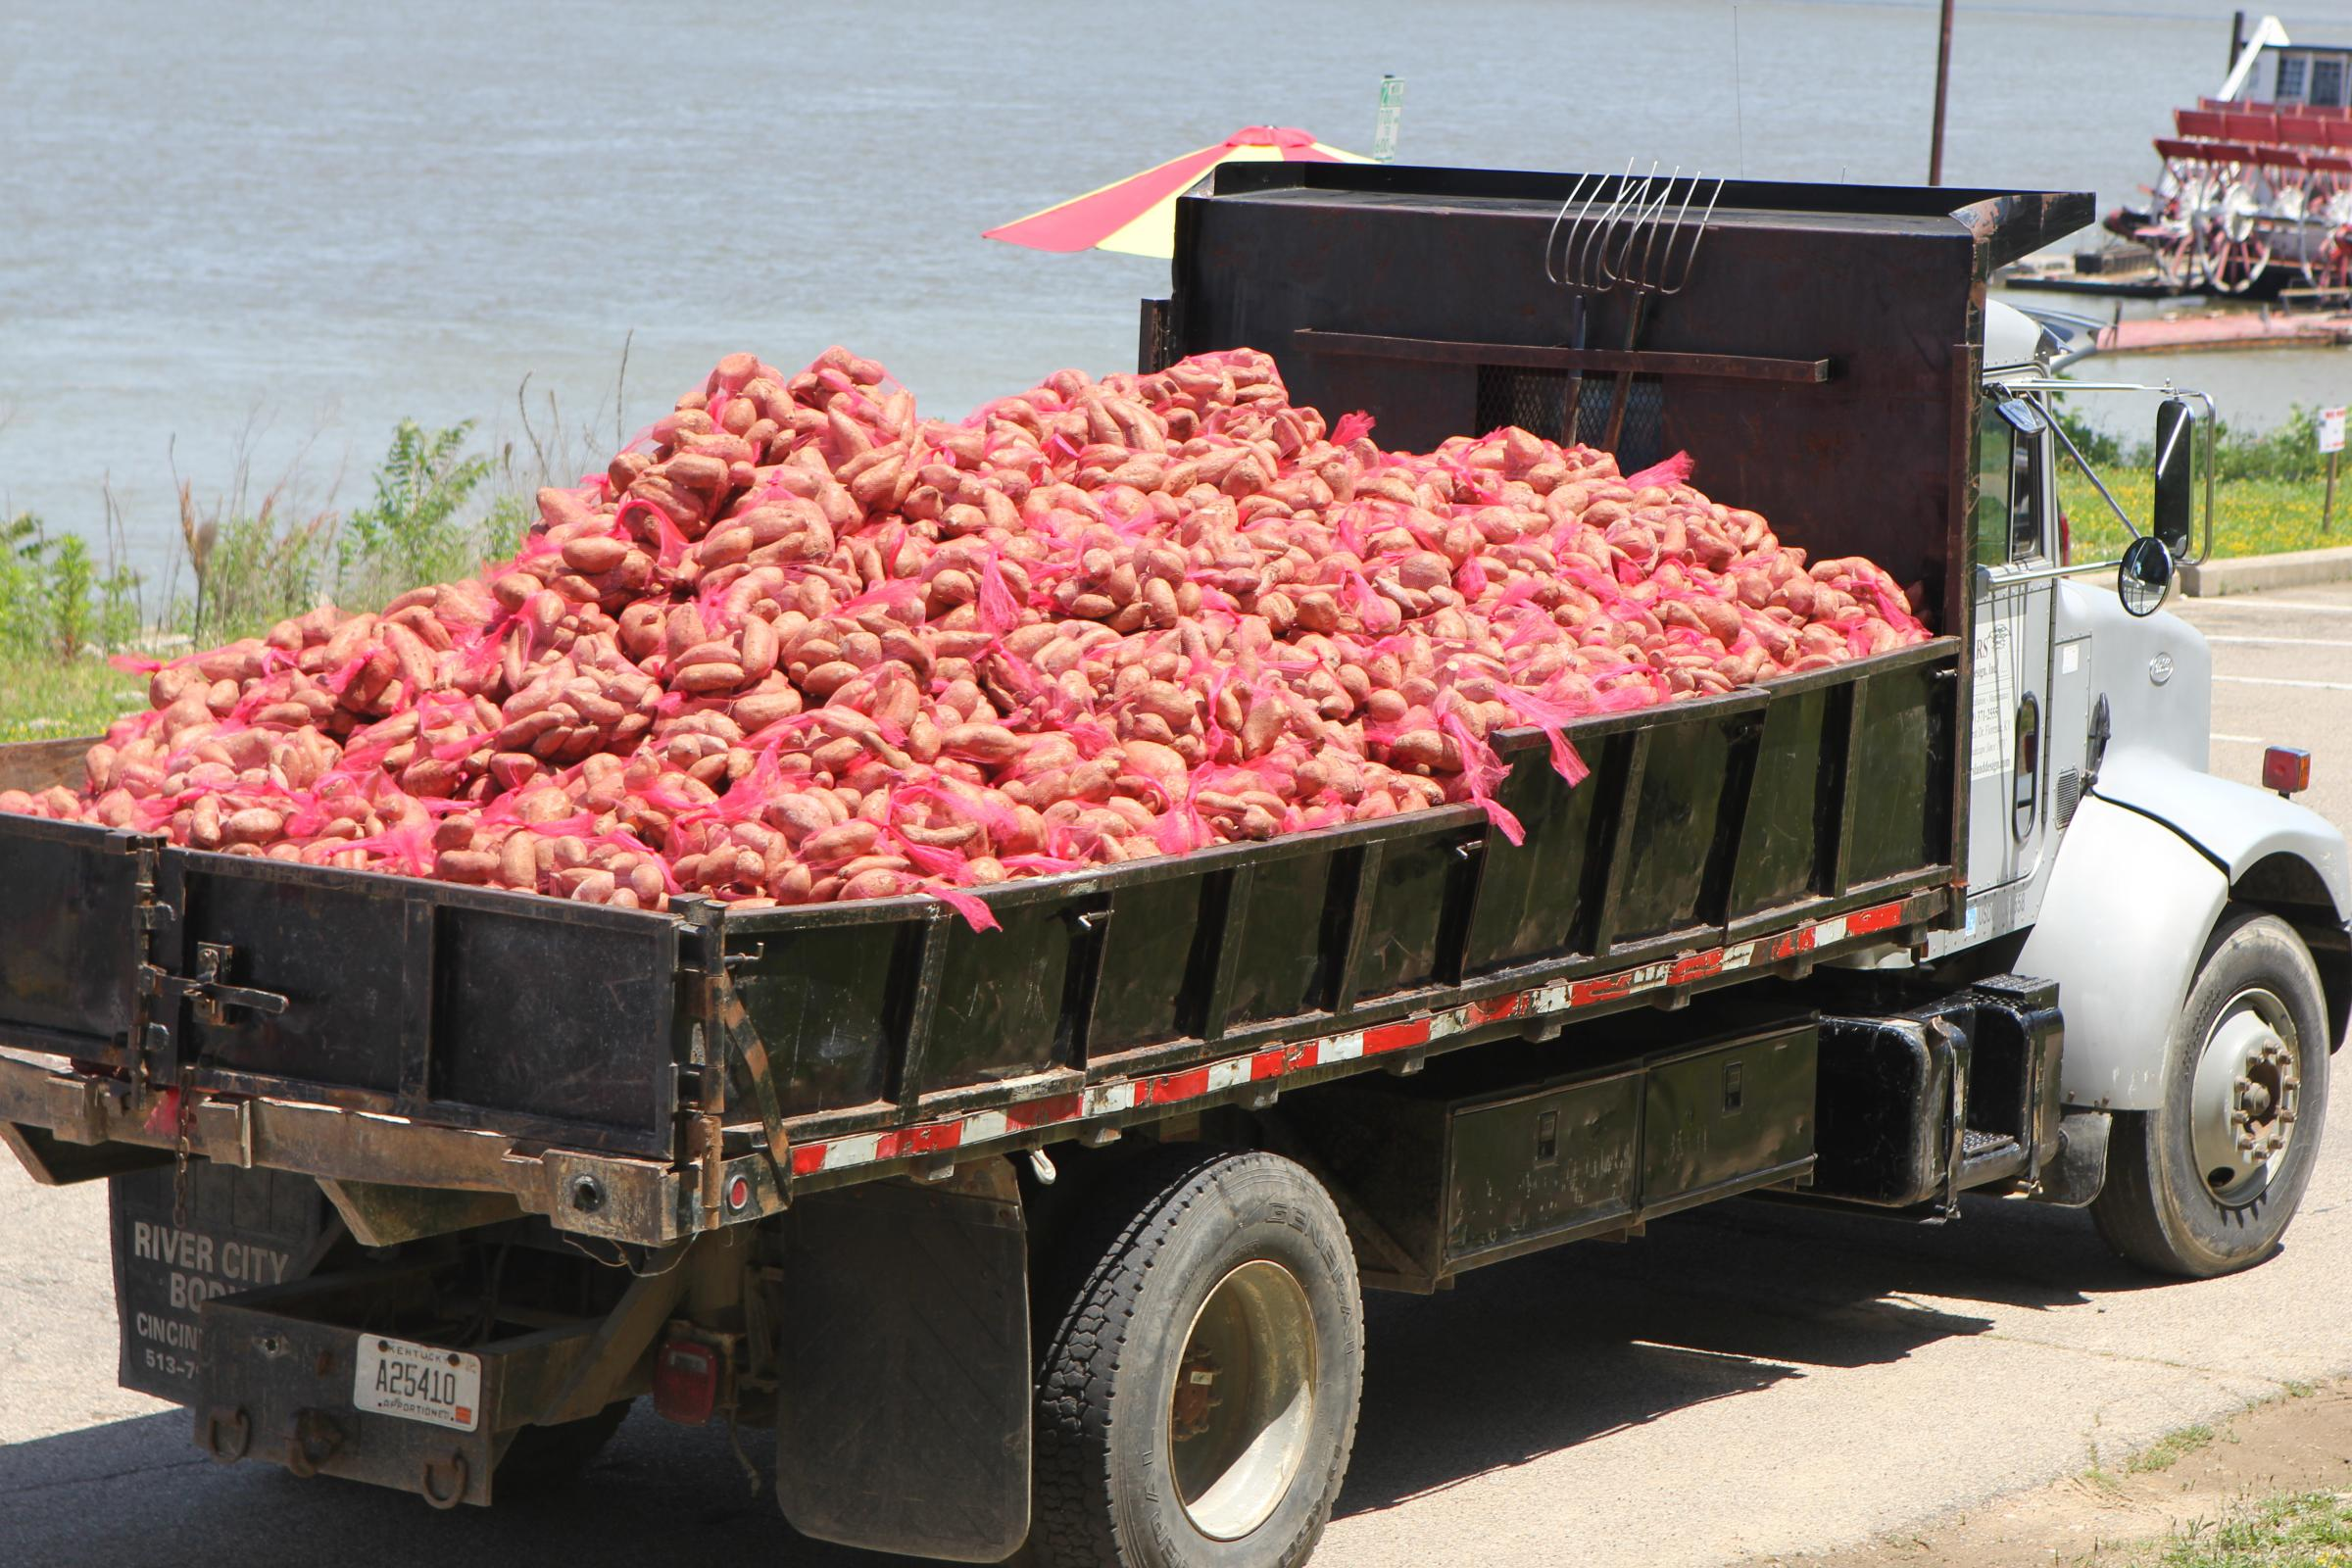 Volunteers Bag Mountain Of Sweet Potatoes For Food